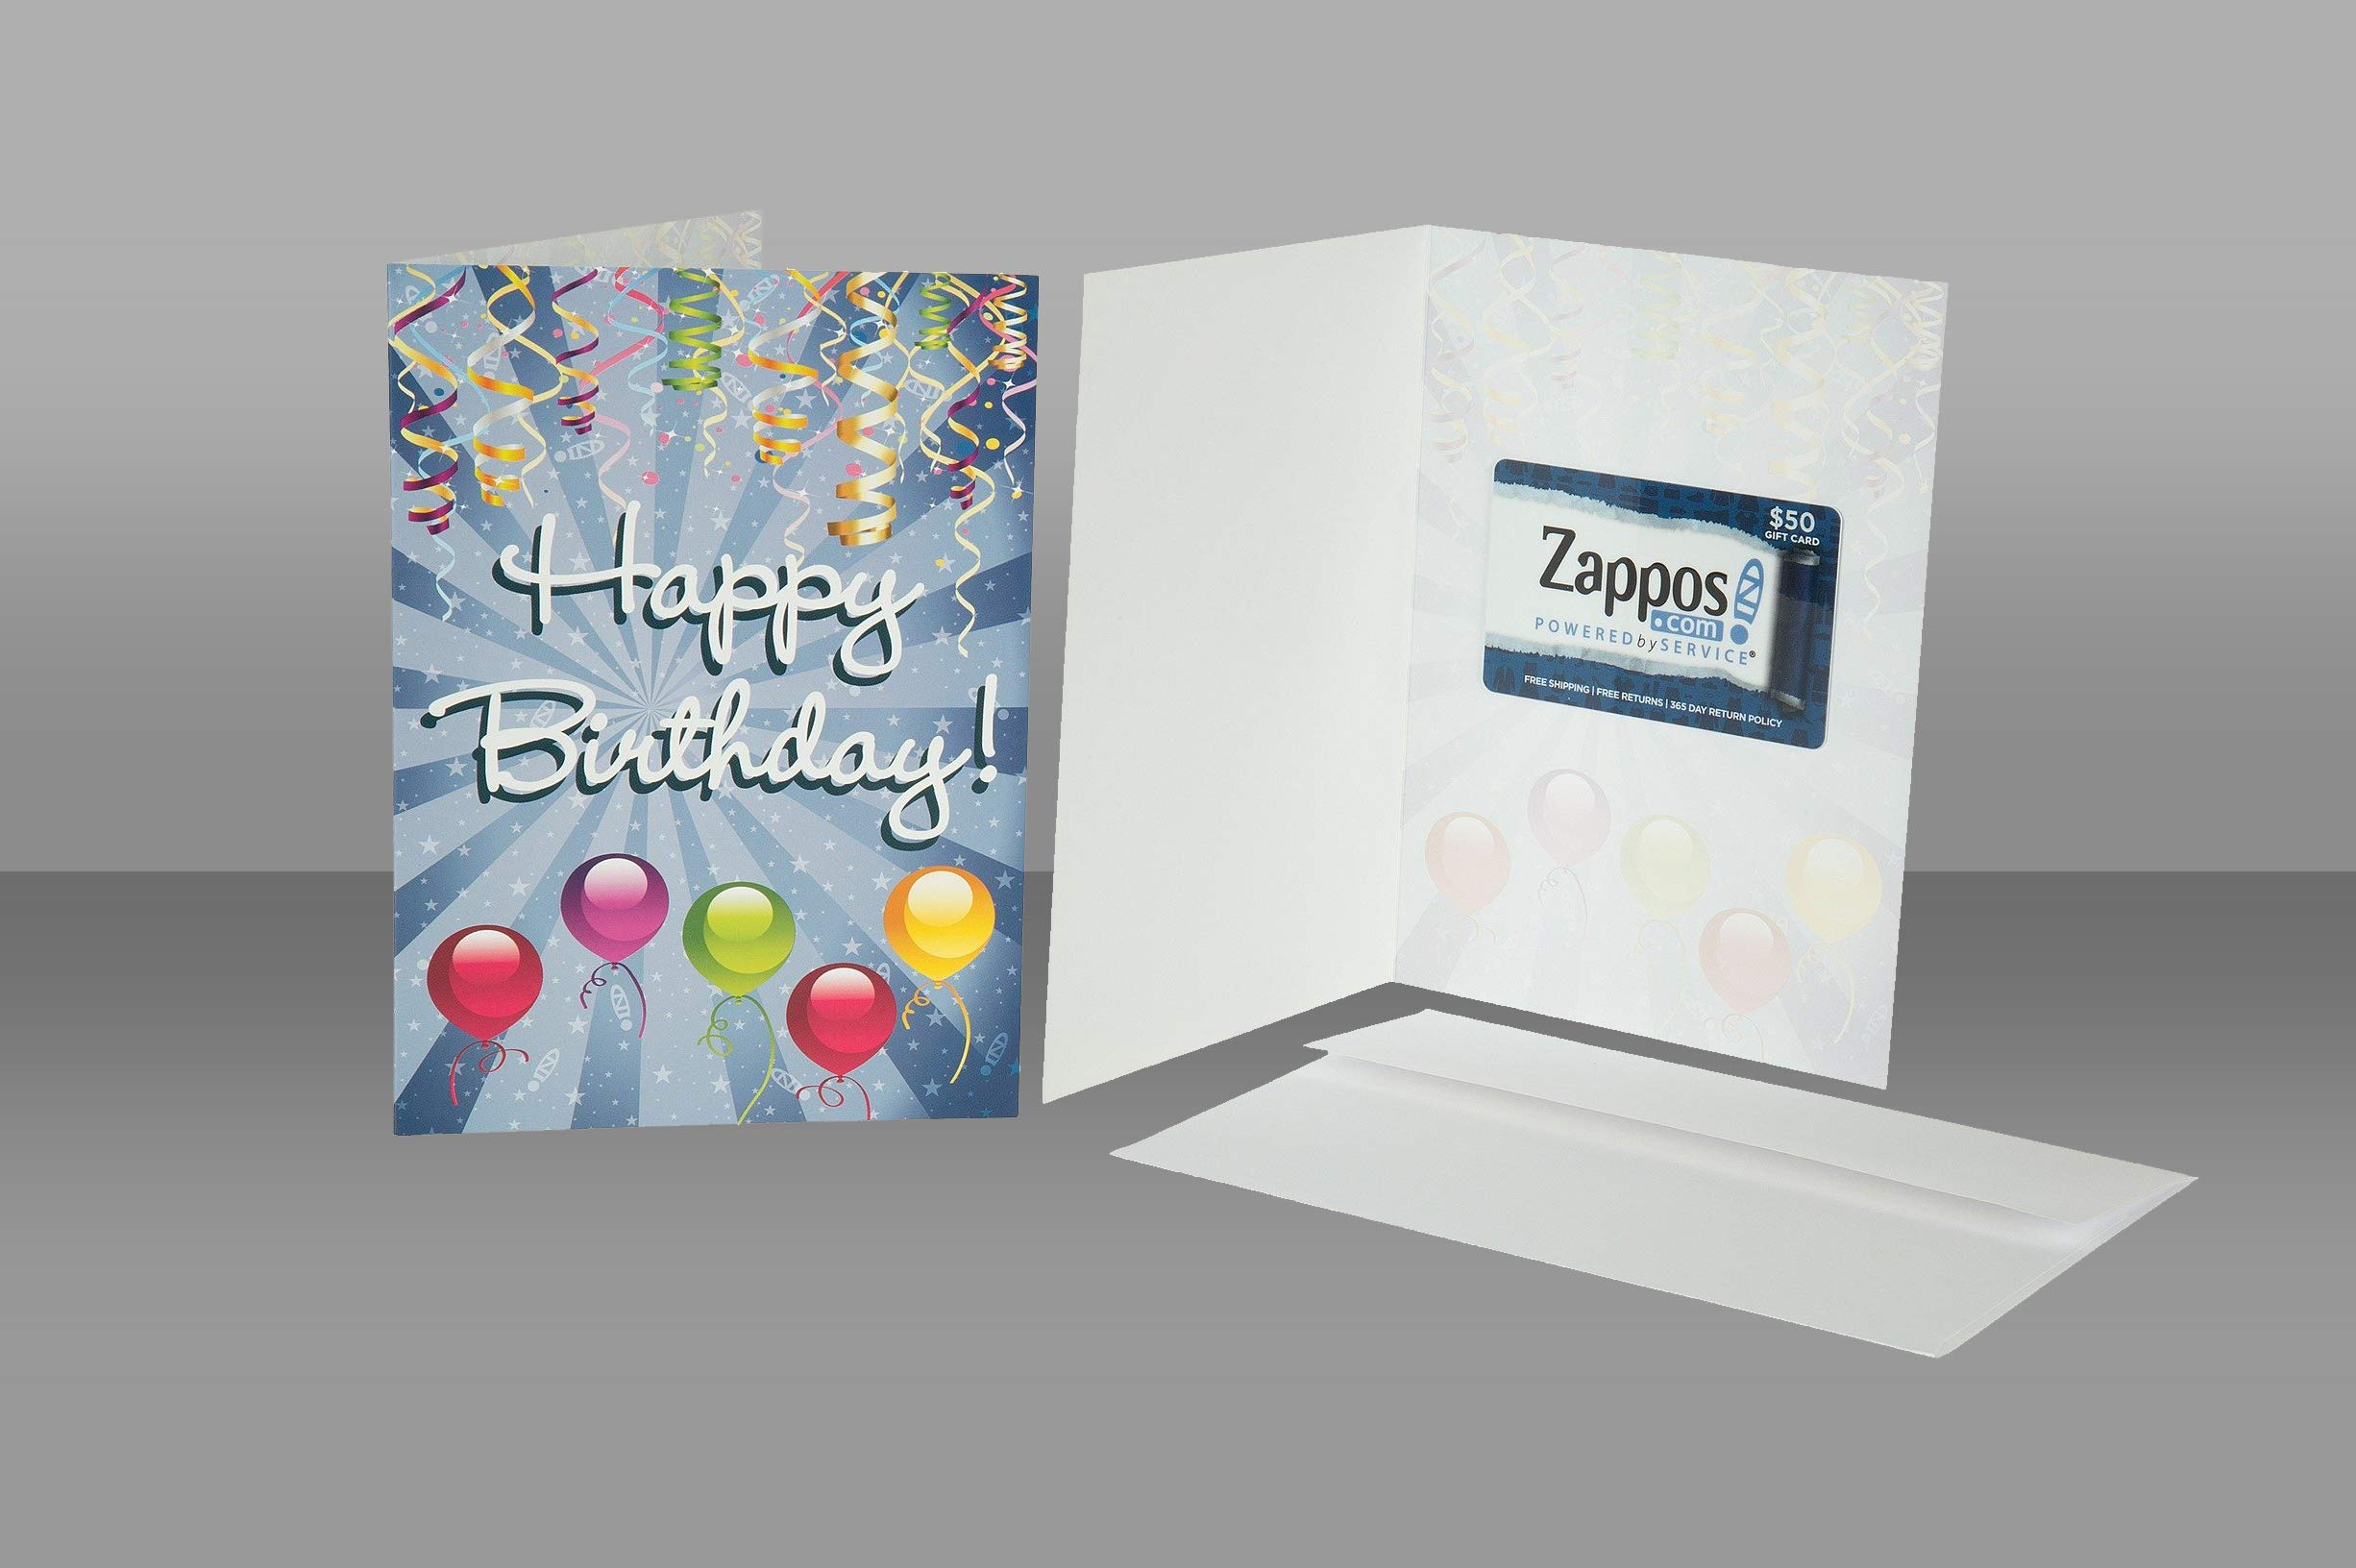 Image for a Zappos Gift Card inside of a Zappos Birthday Card